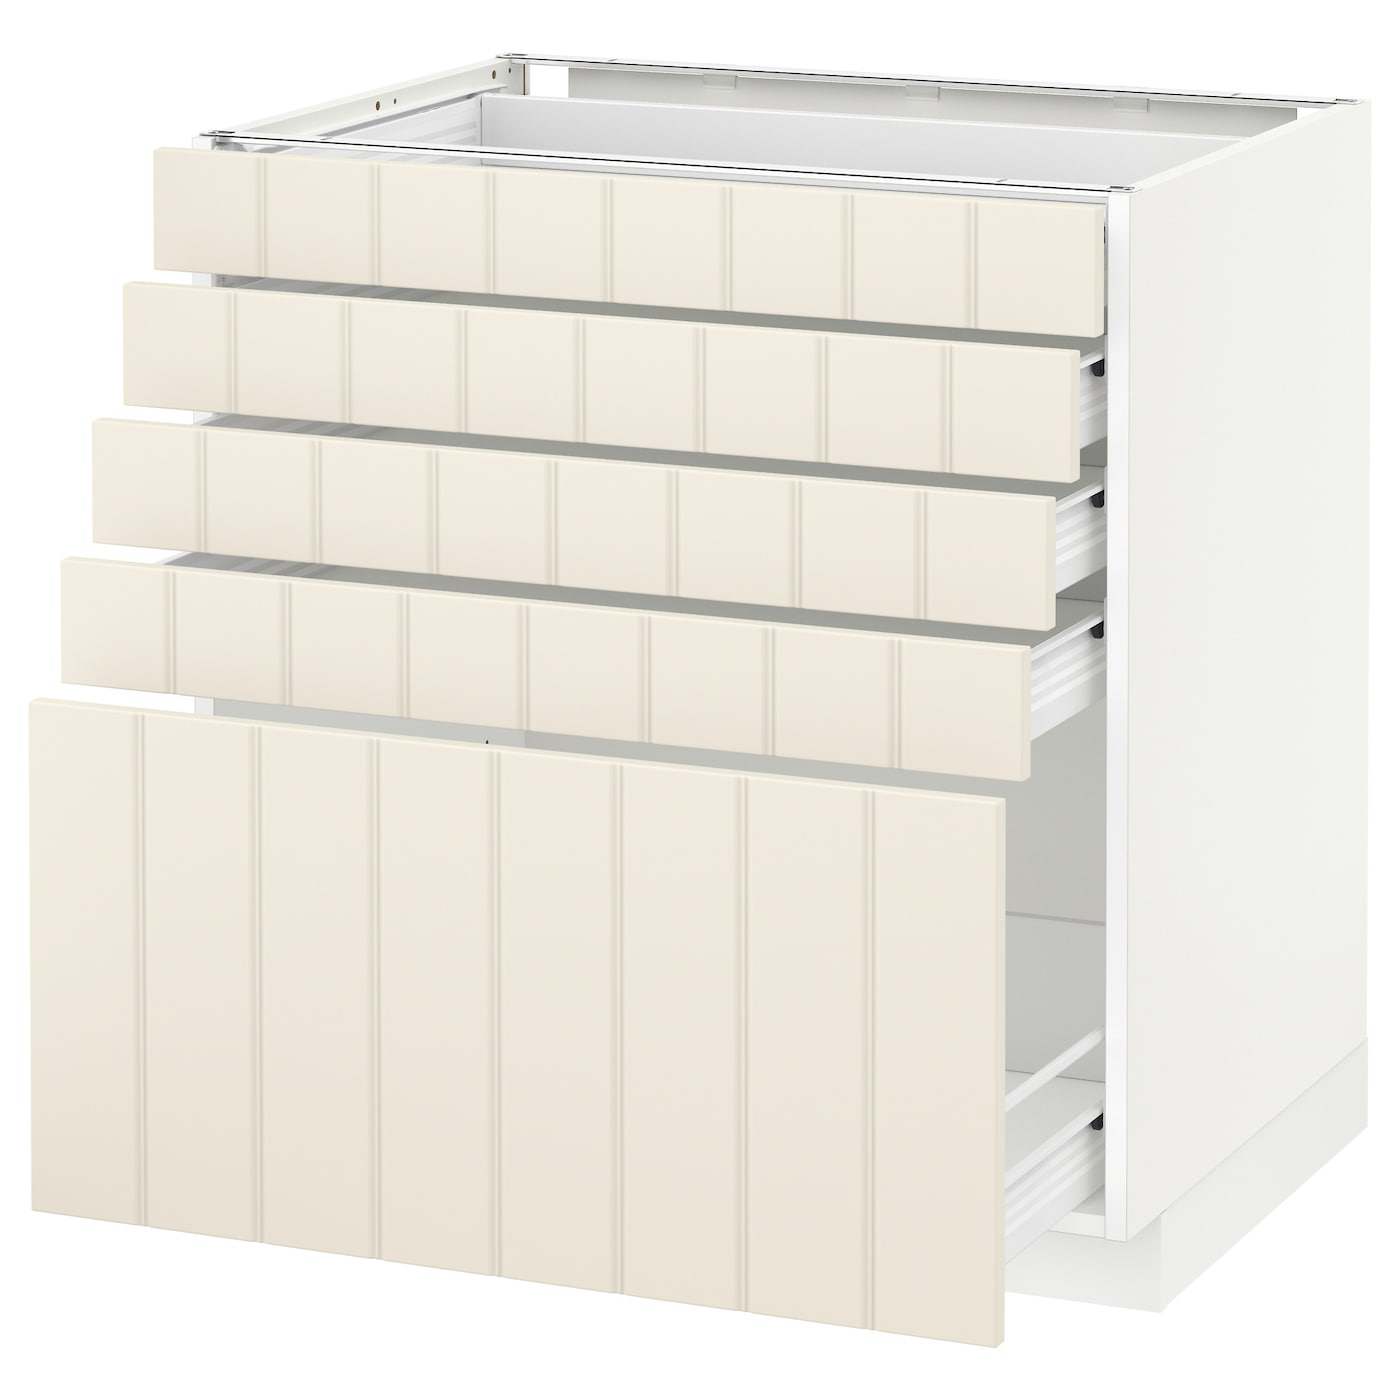 IKEA METOD/FÖRVARA base cabinet with 5 drawers Sturdy frame construction, 18 mm thick.